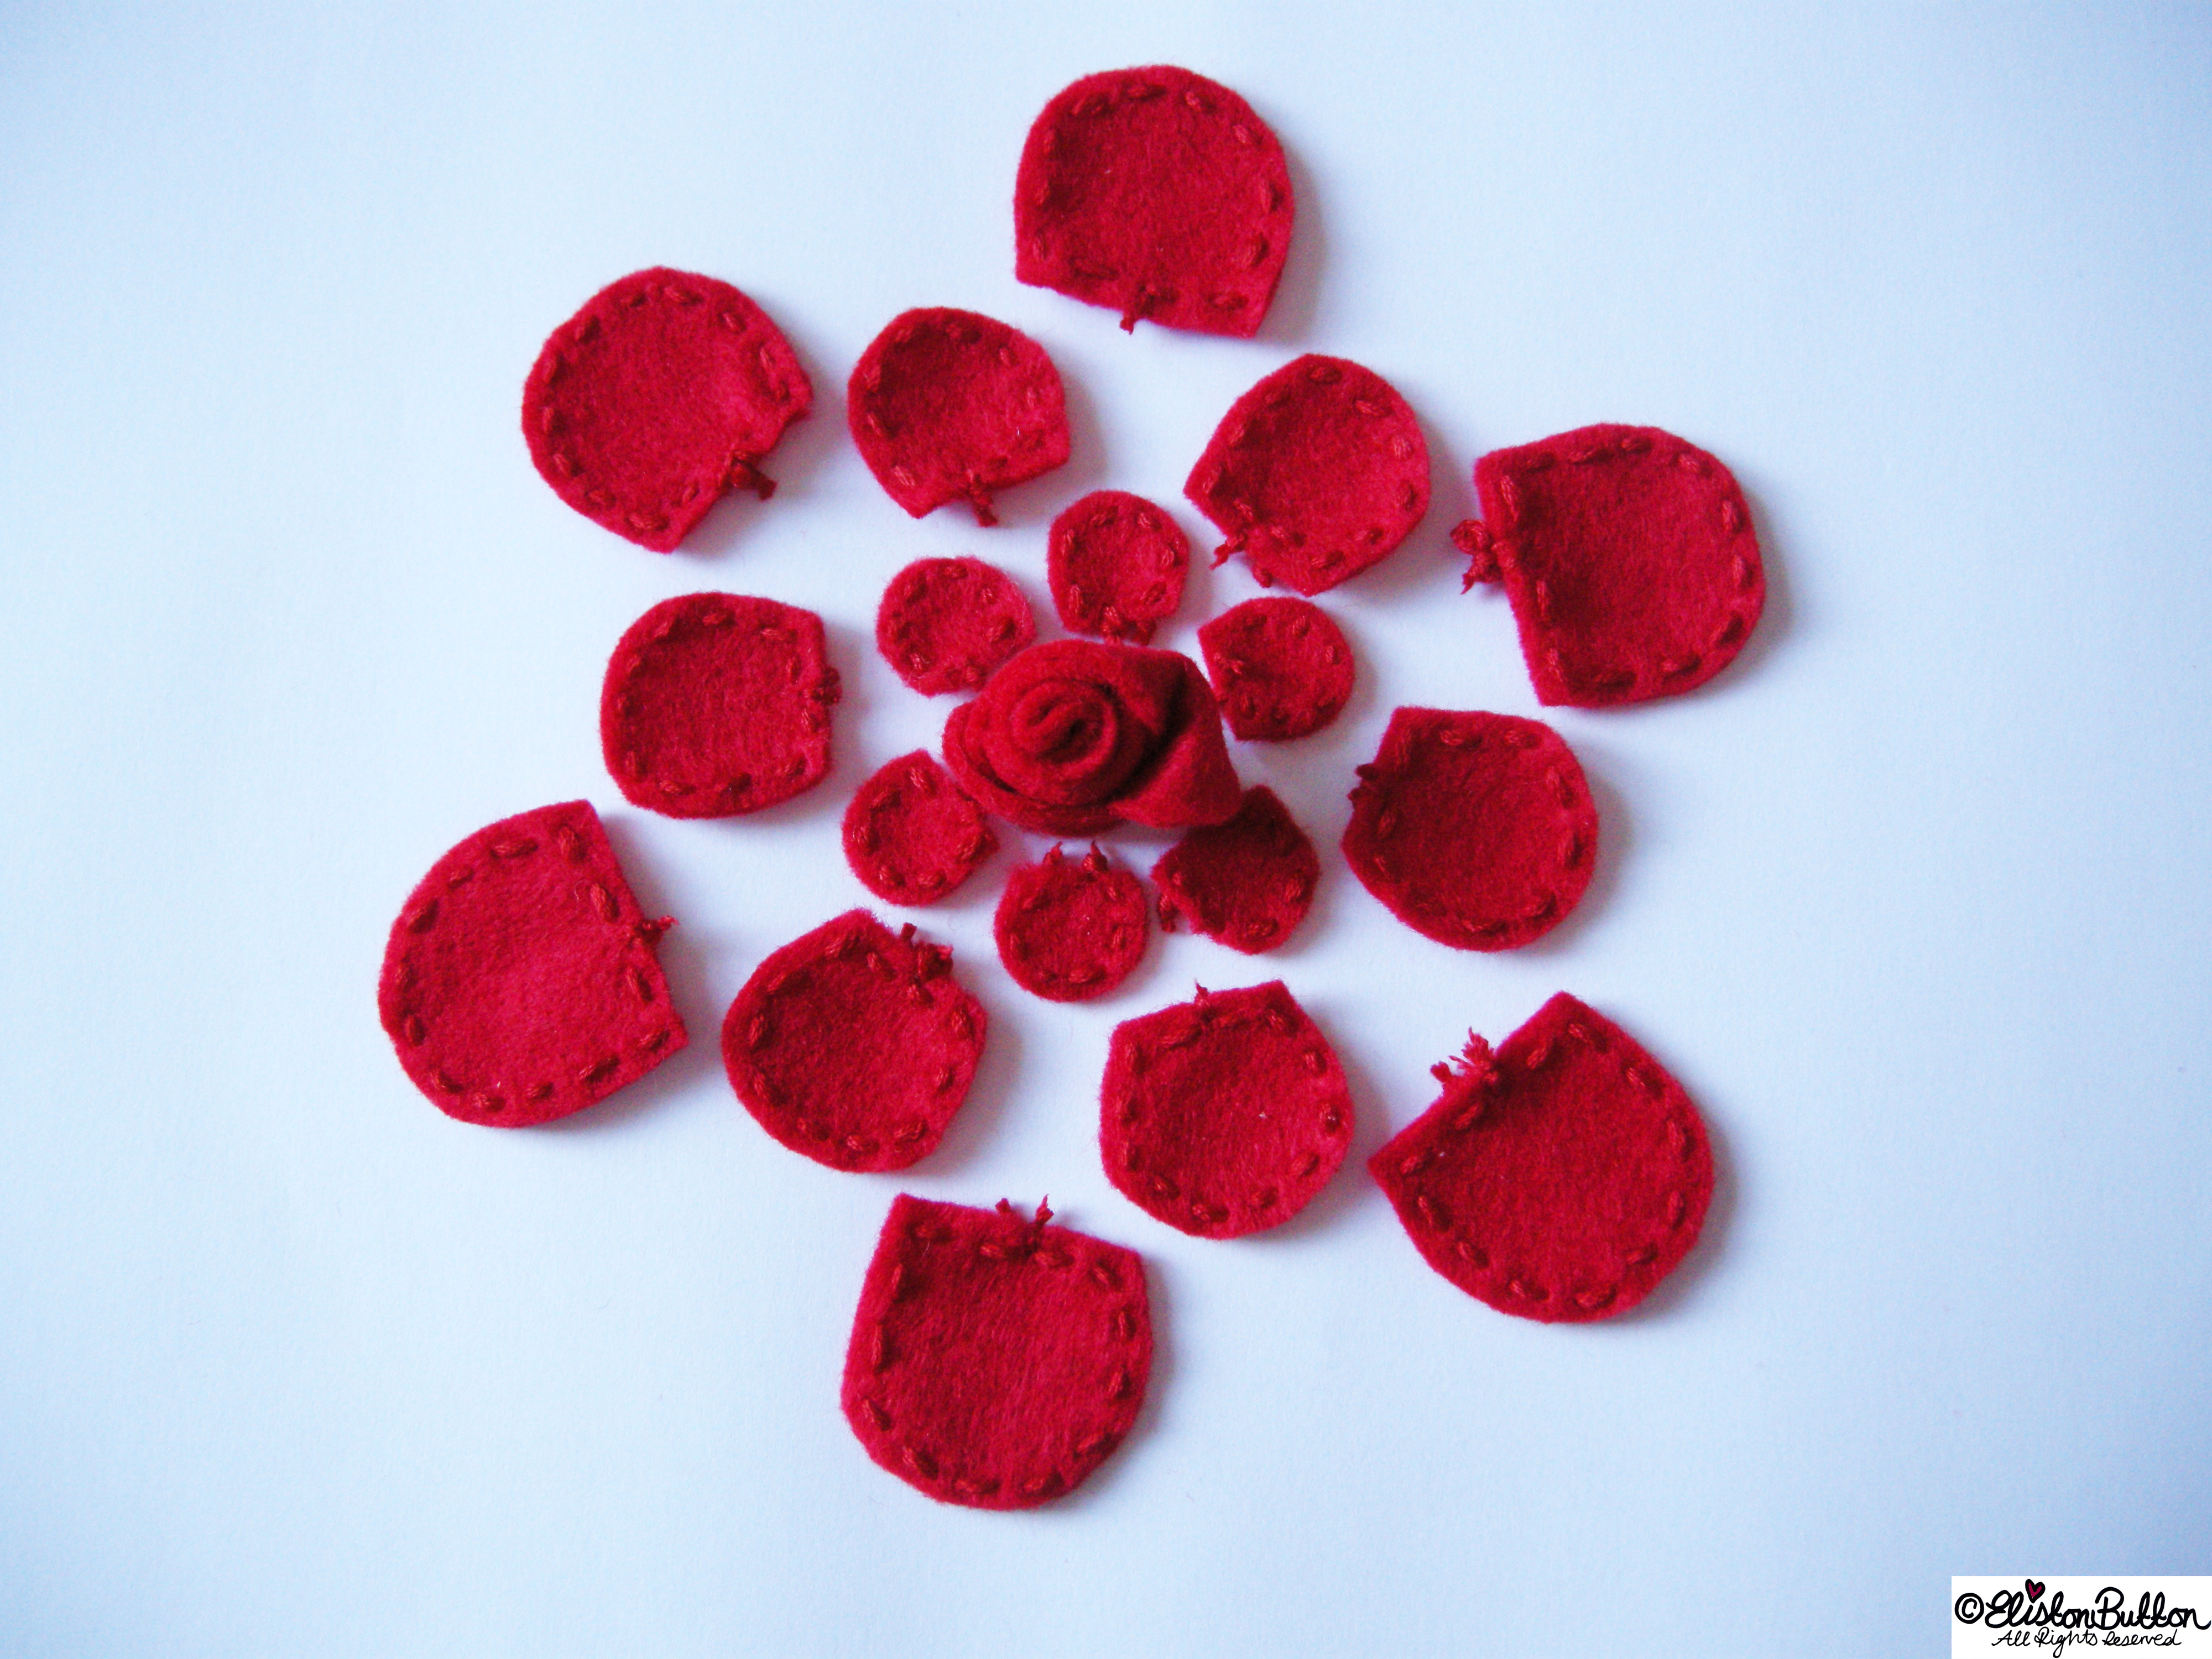 Embroidered Felt Rose Flower - Construction - 27 Before 27 - Roses are Red at www.elistonbutton.com - Eliston Button - That Crafty Kid – Art, Design, Craft & Adventure.